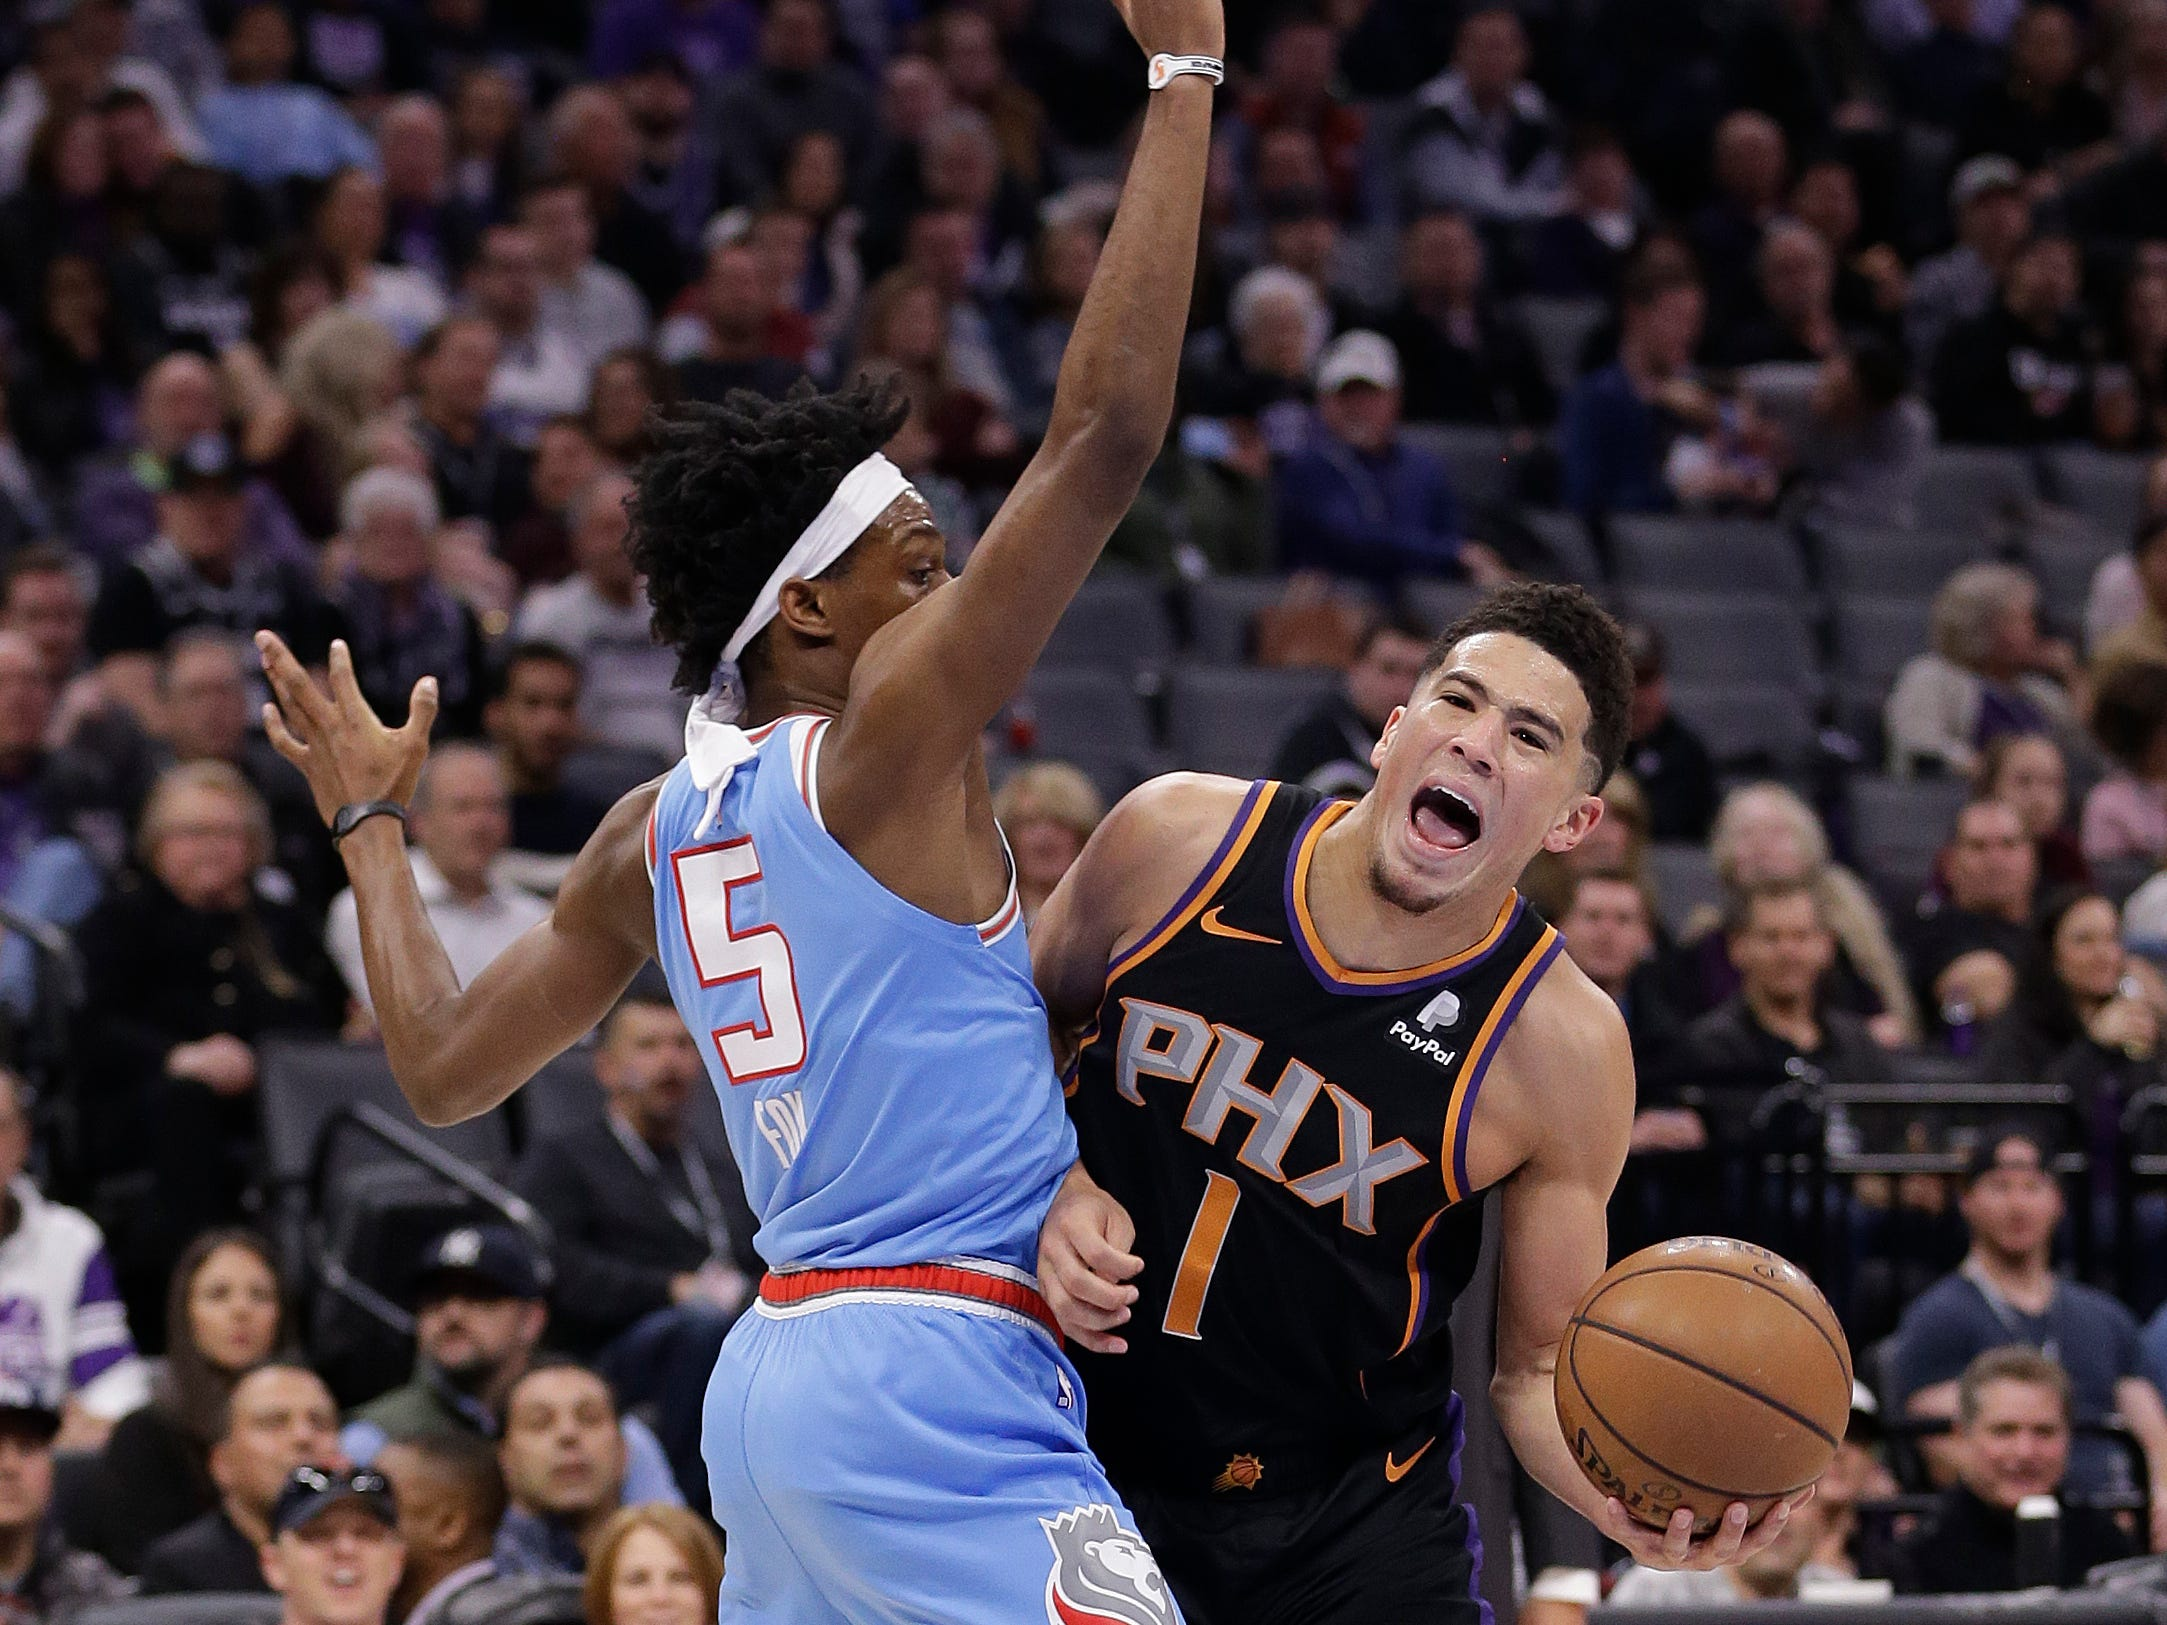 Phoenix Suns guard Devin Booker, right, is fouled by Sacramento Kings guard De'Aaron Fox, left, as he drives to the basket against during the first half of an NBA basketball game Sunday, Feb. 10, 2019, in Sacramento, Calif.